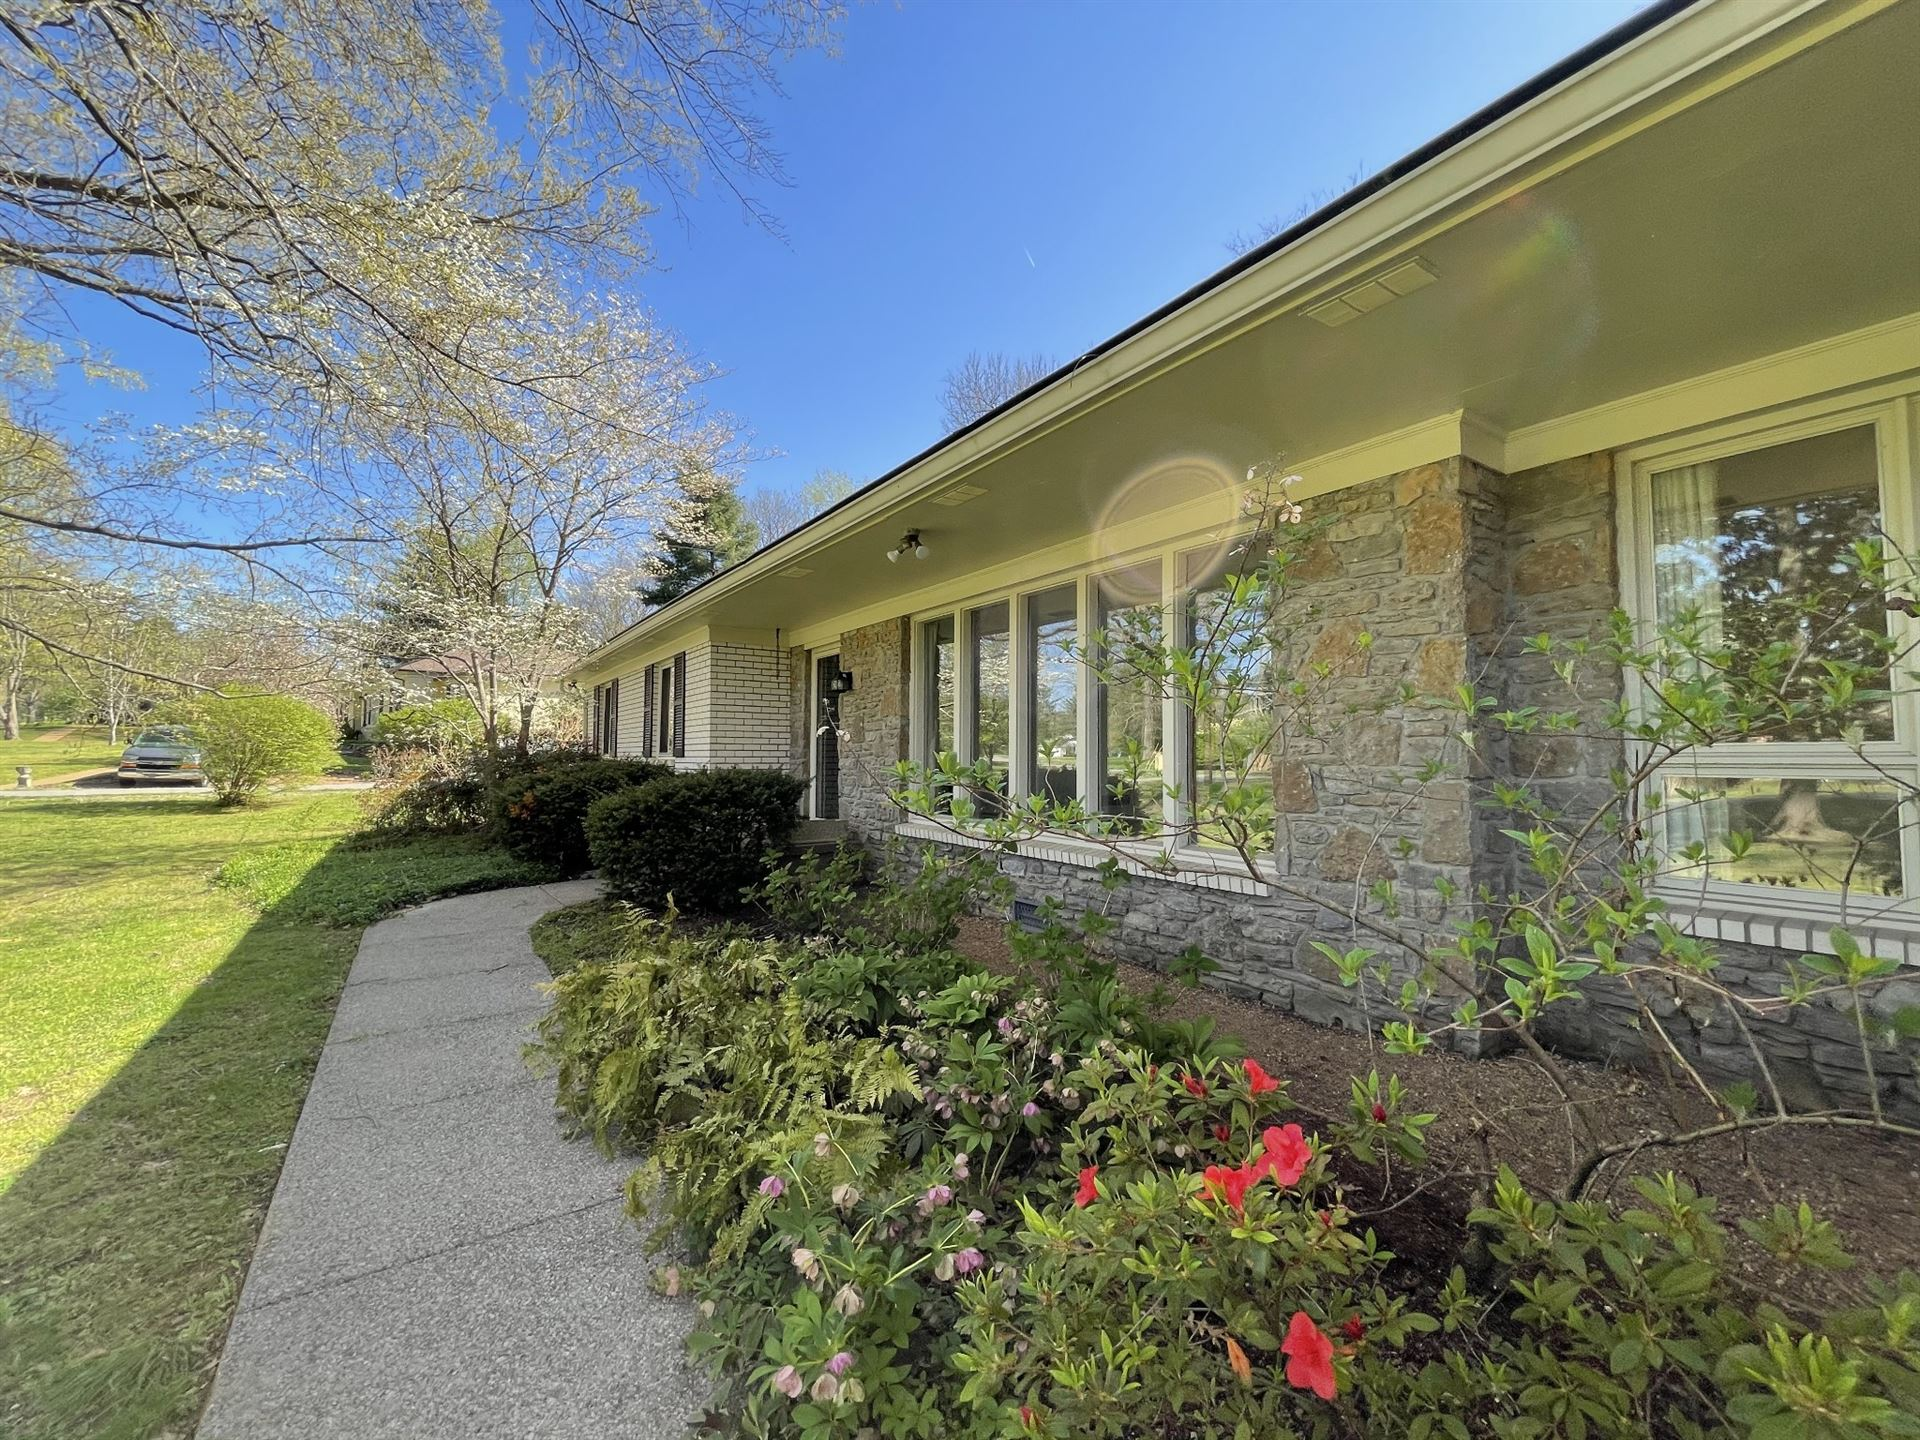 Photo of 1900 Rosewood Valley Dr, Brentwood, TN 37027 (MLS # 2242576)